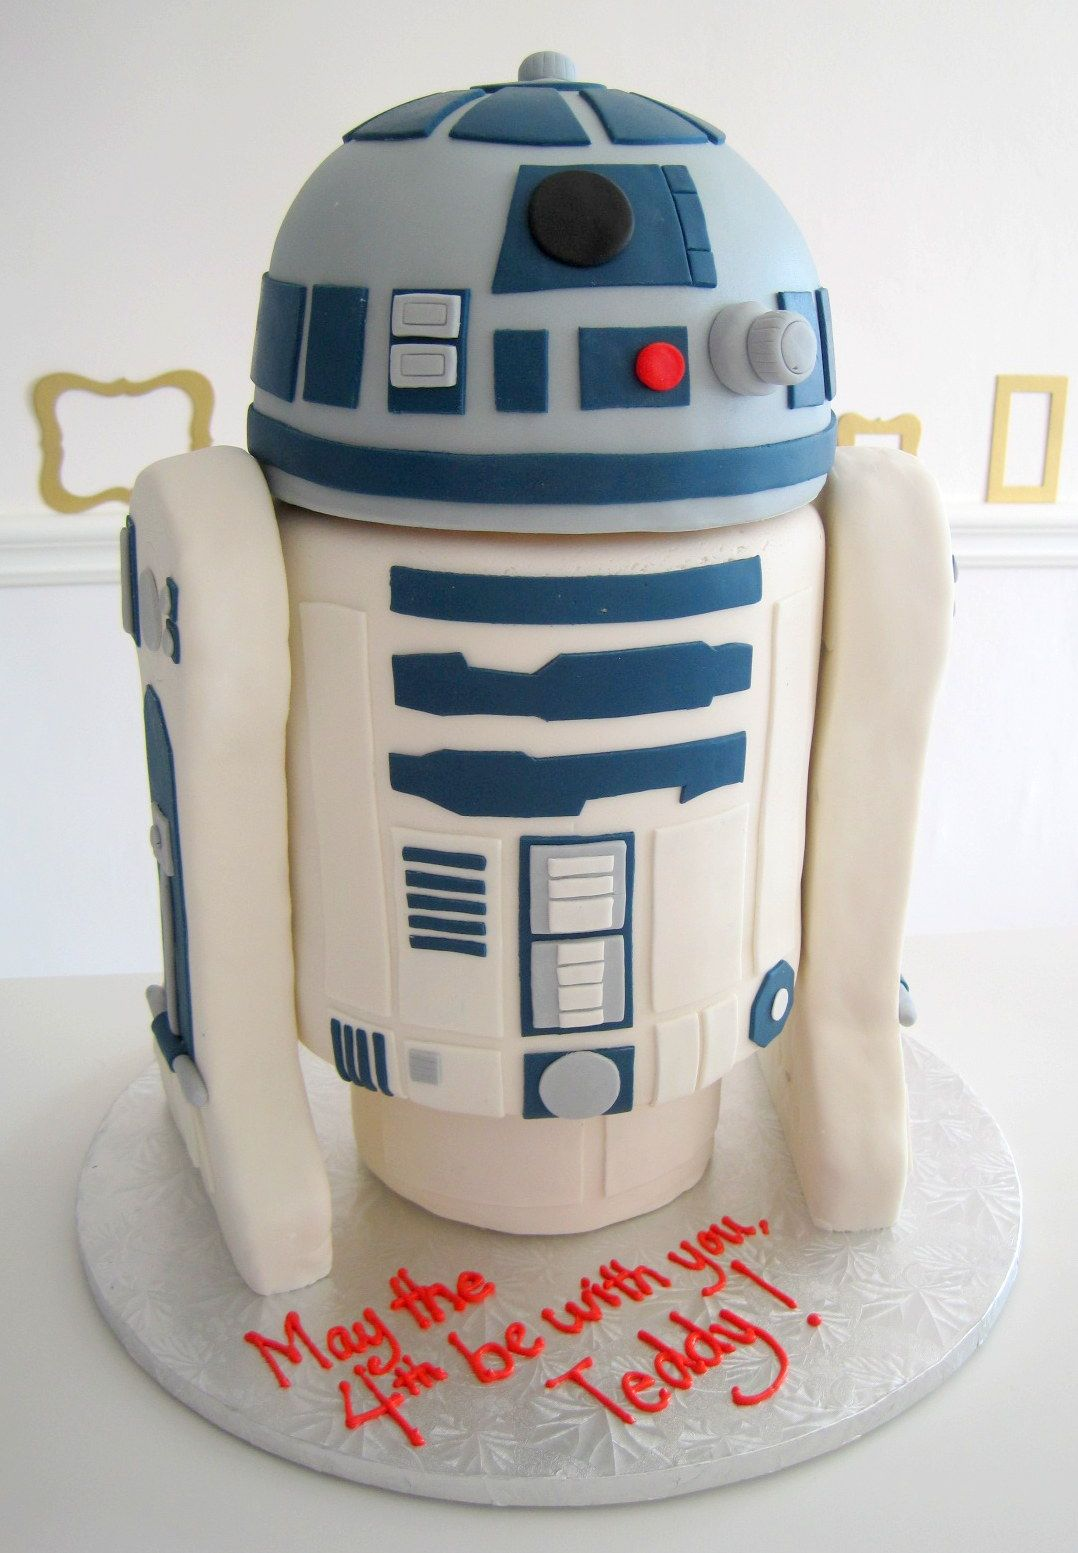 R2D2 Star Wars Cake | Baby Bea's Bakeshop